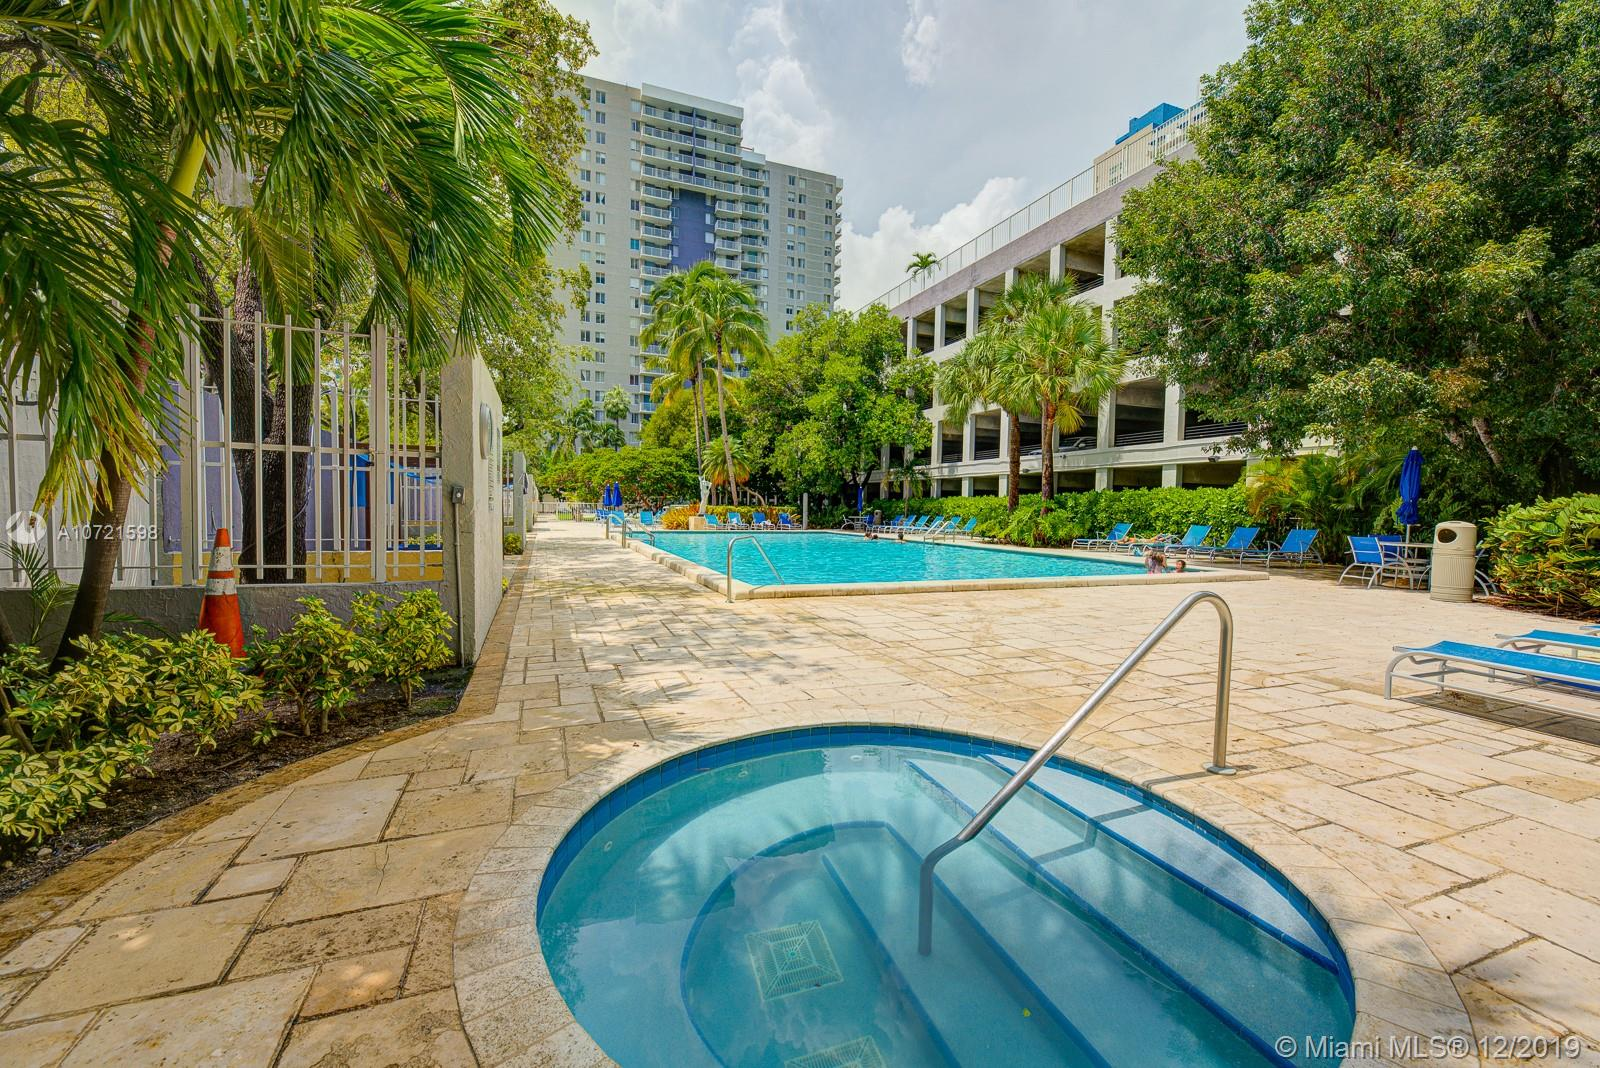 850 N Miami Ave, one of homes for sale in Grand Bahama Island